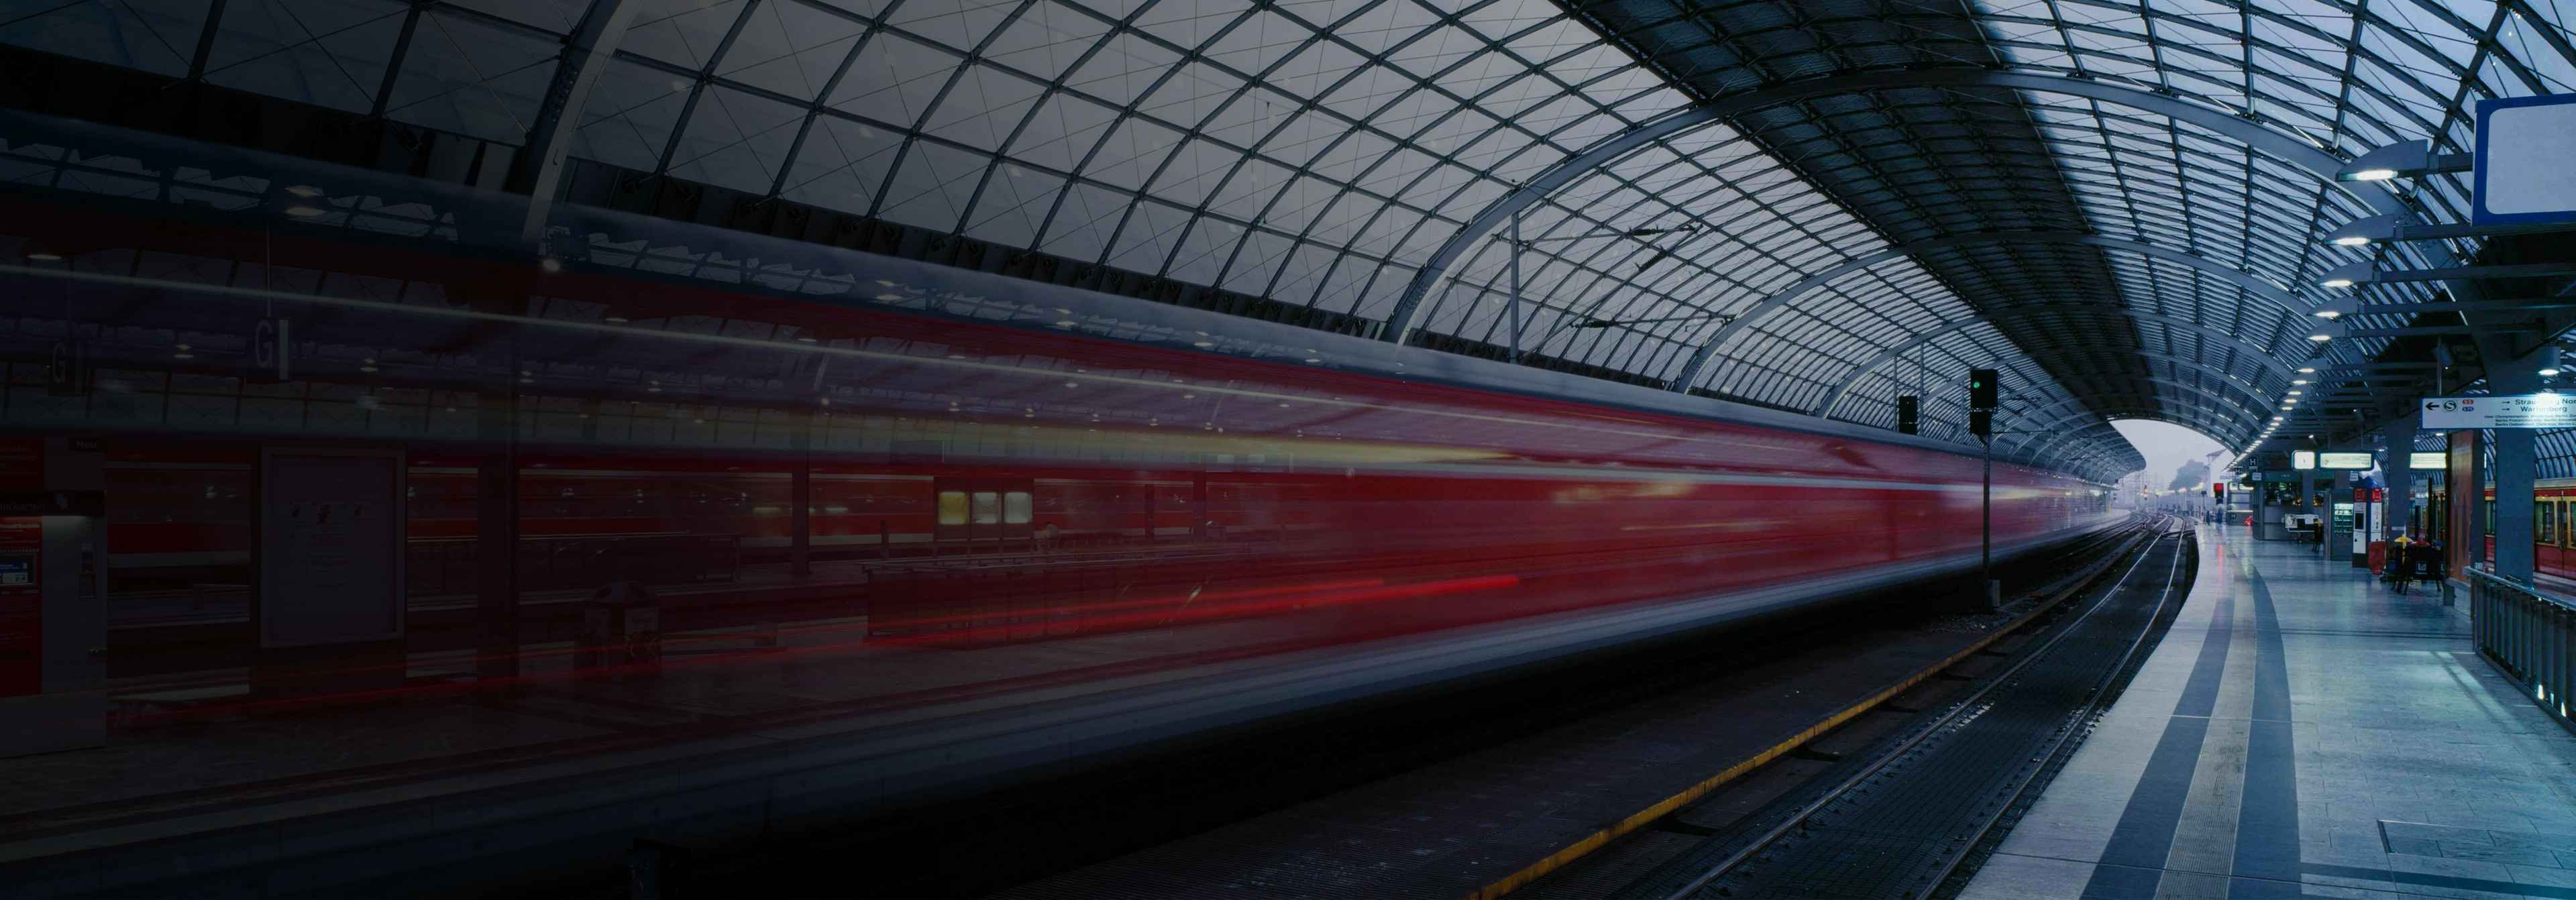 Photo of a train station